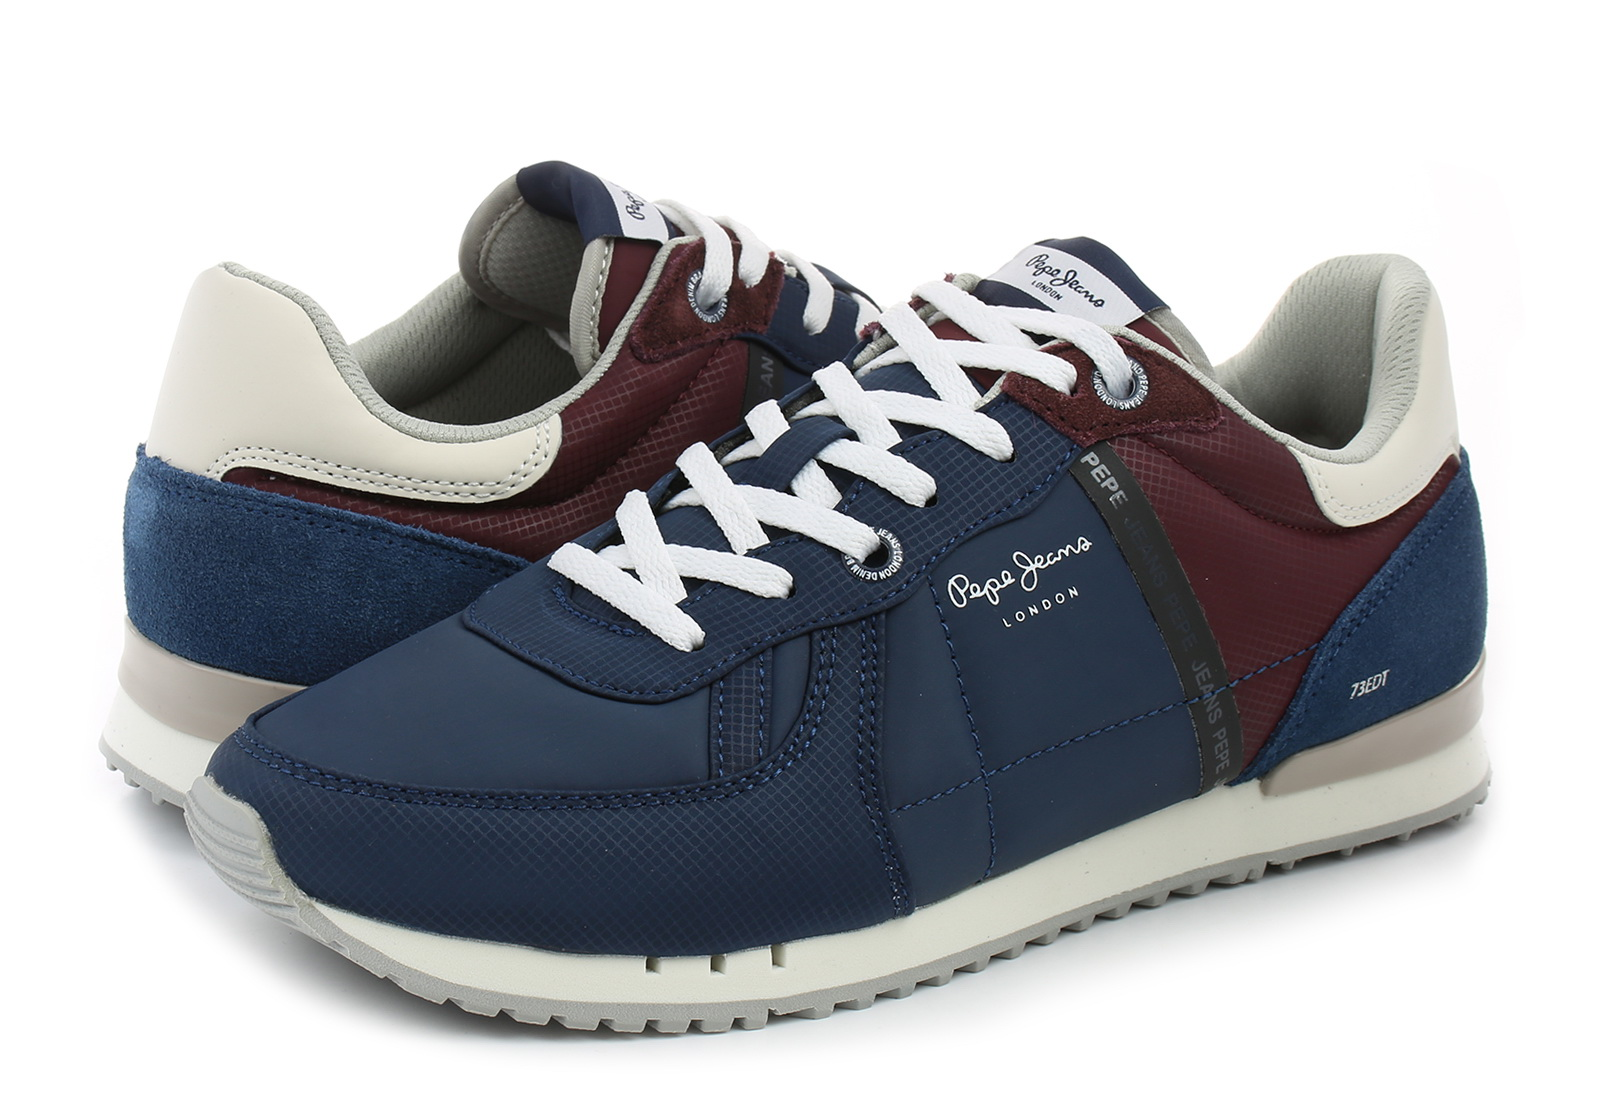 new product cf53a f2700 Pepe Jeans Shoes - Pms30509 - PMS30509579 - Online shop for sneakers, shoes  and boots